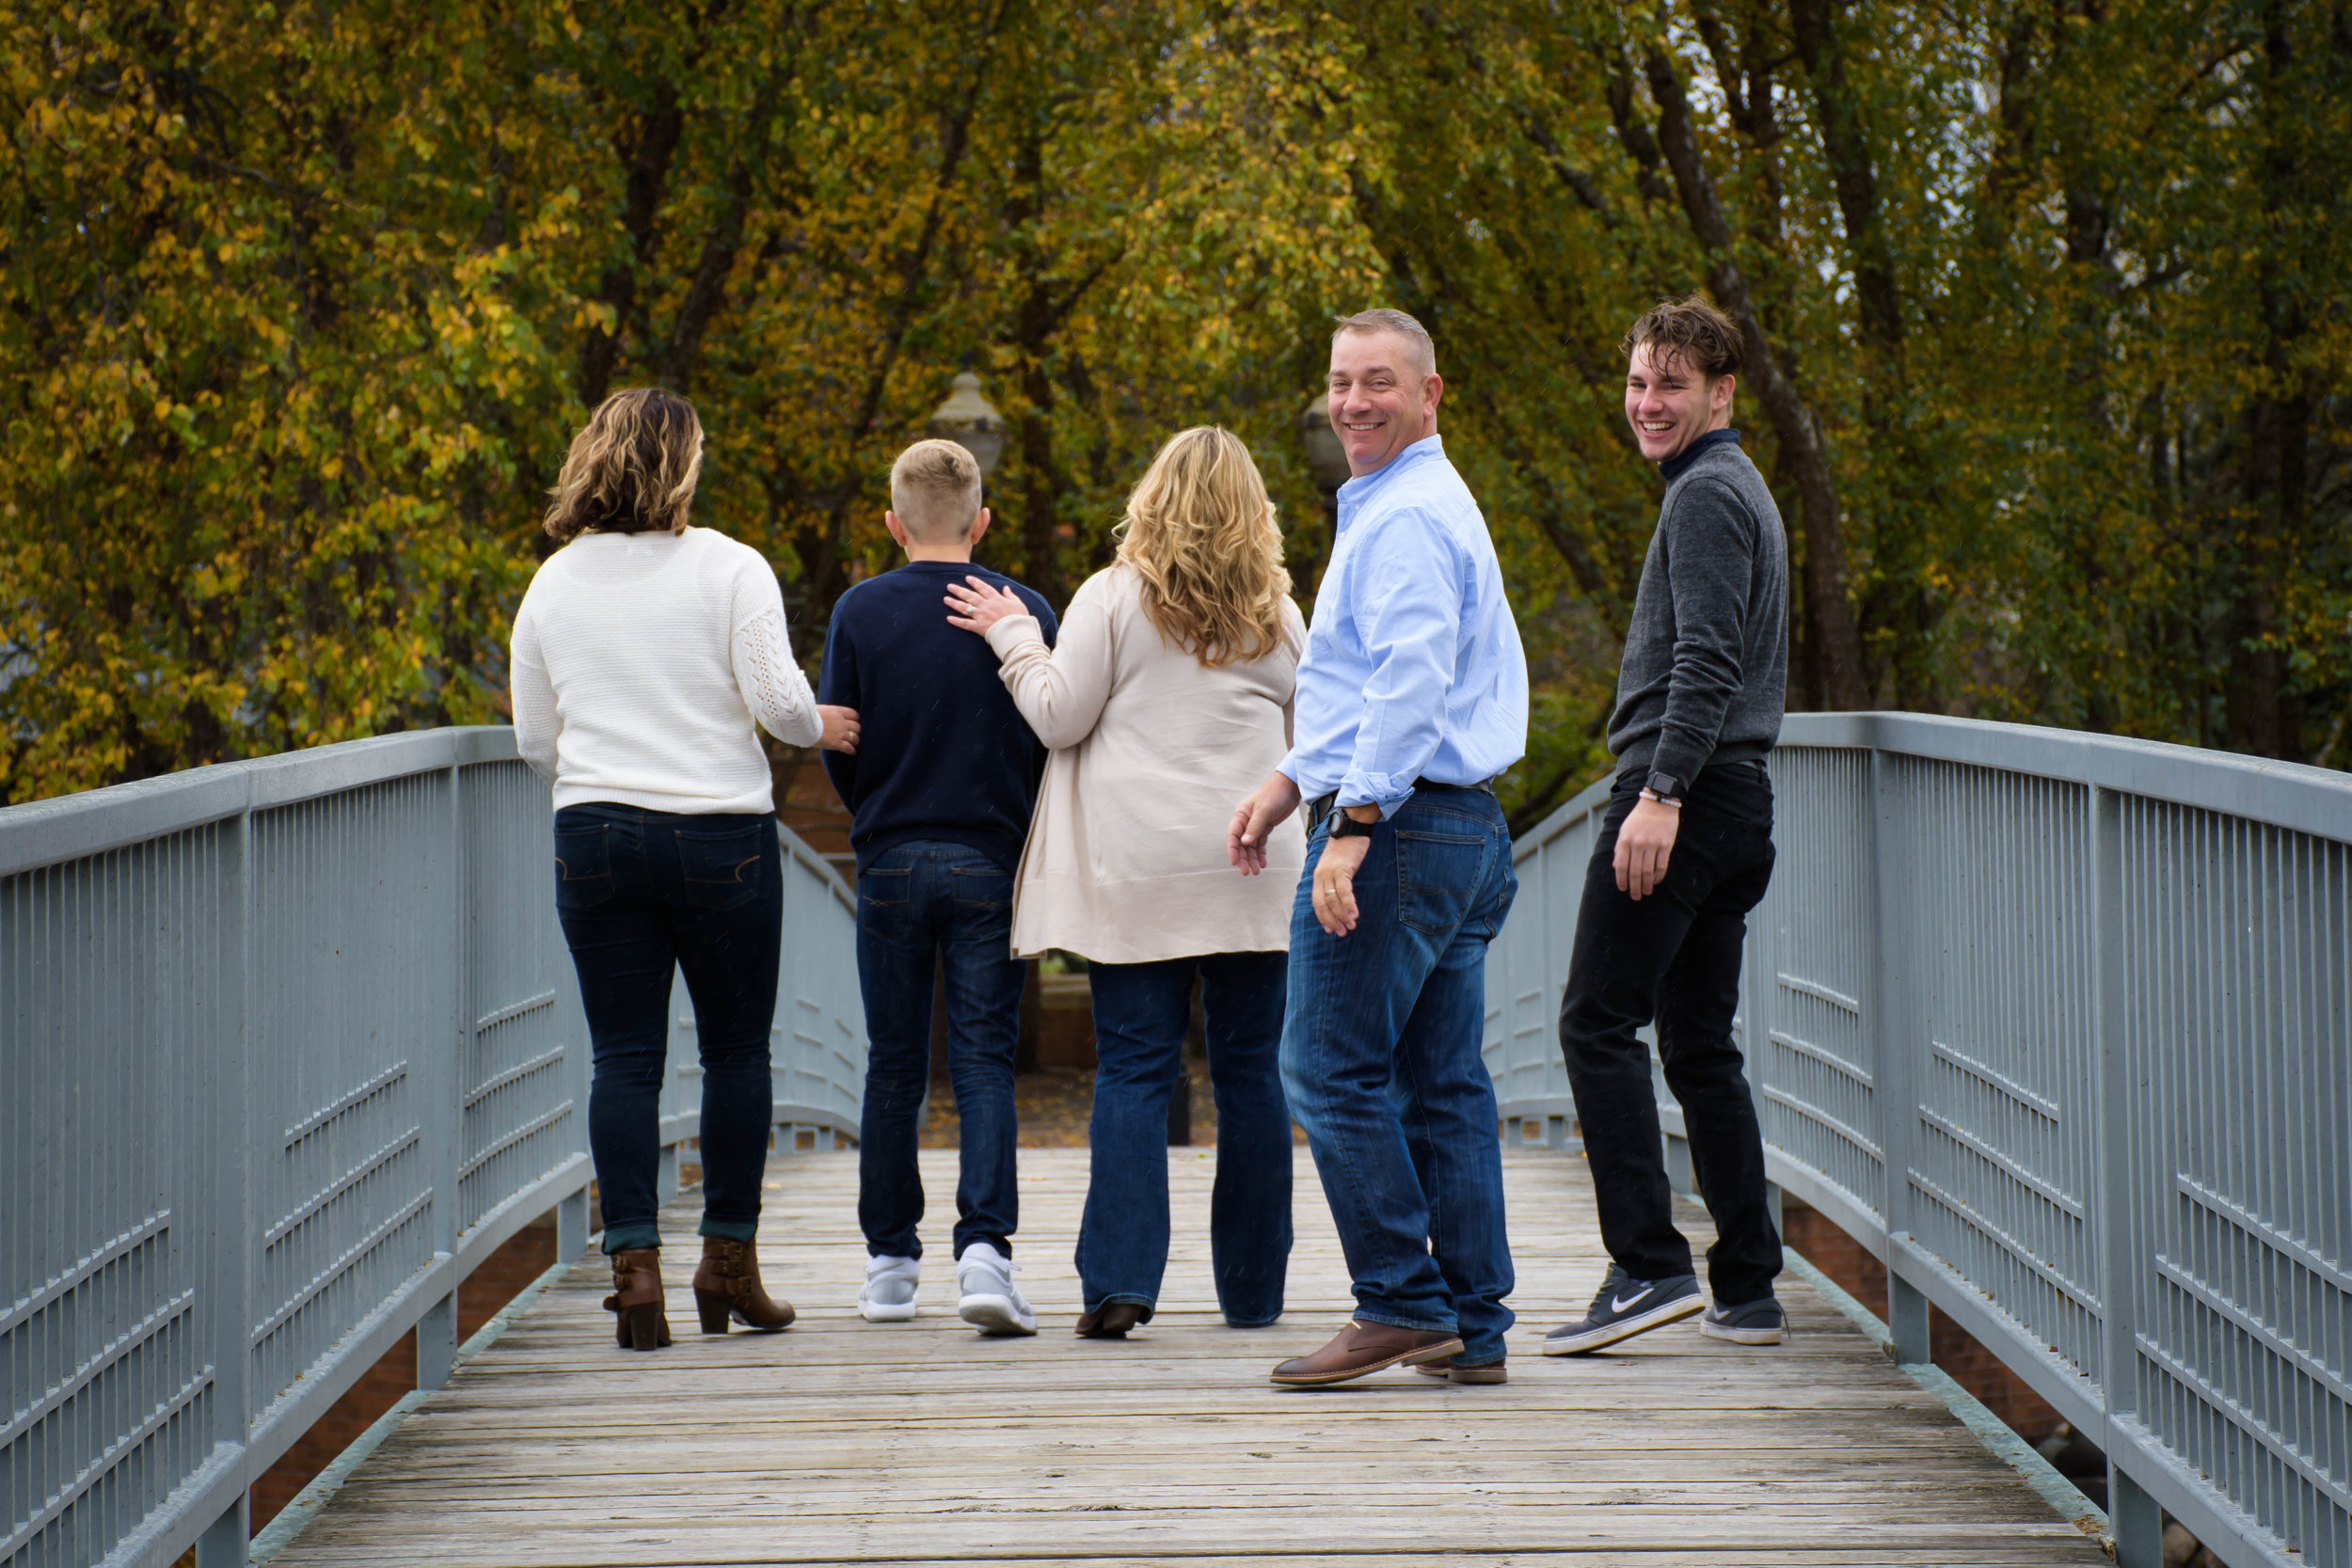 Skidmore Family Session - Battle Creek river walk